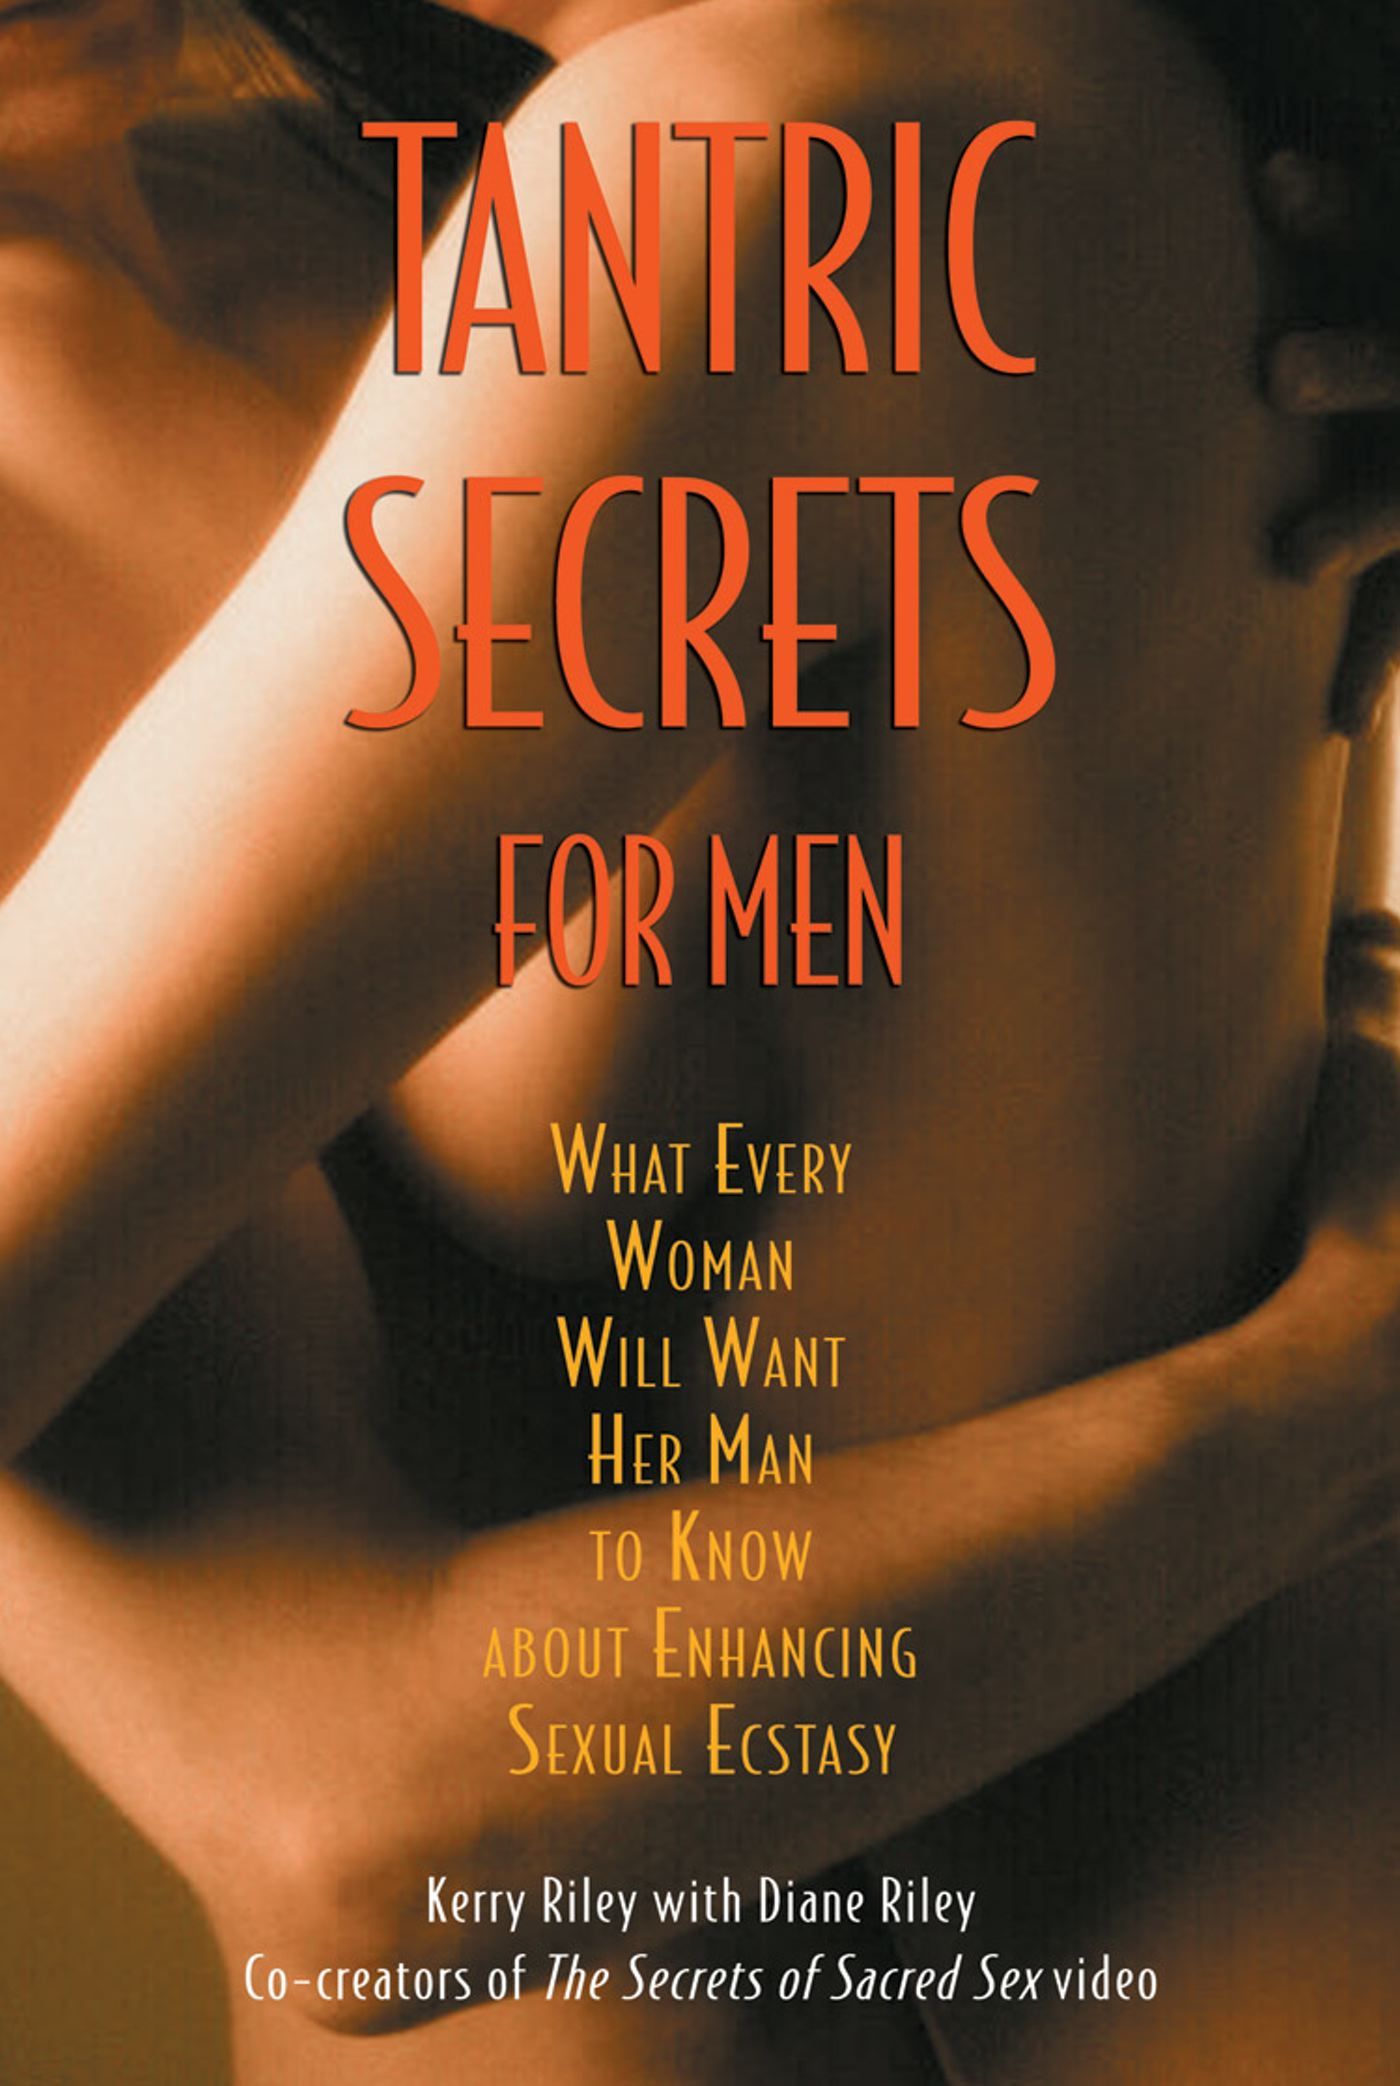 Tantric secrets for men 9780892819690 hr